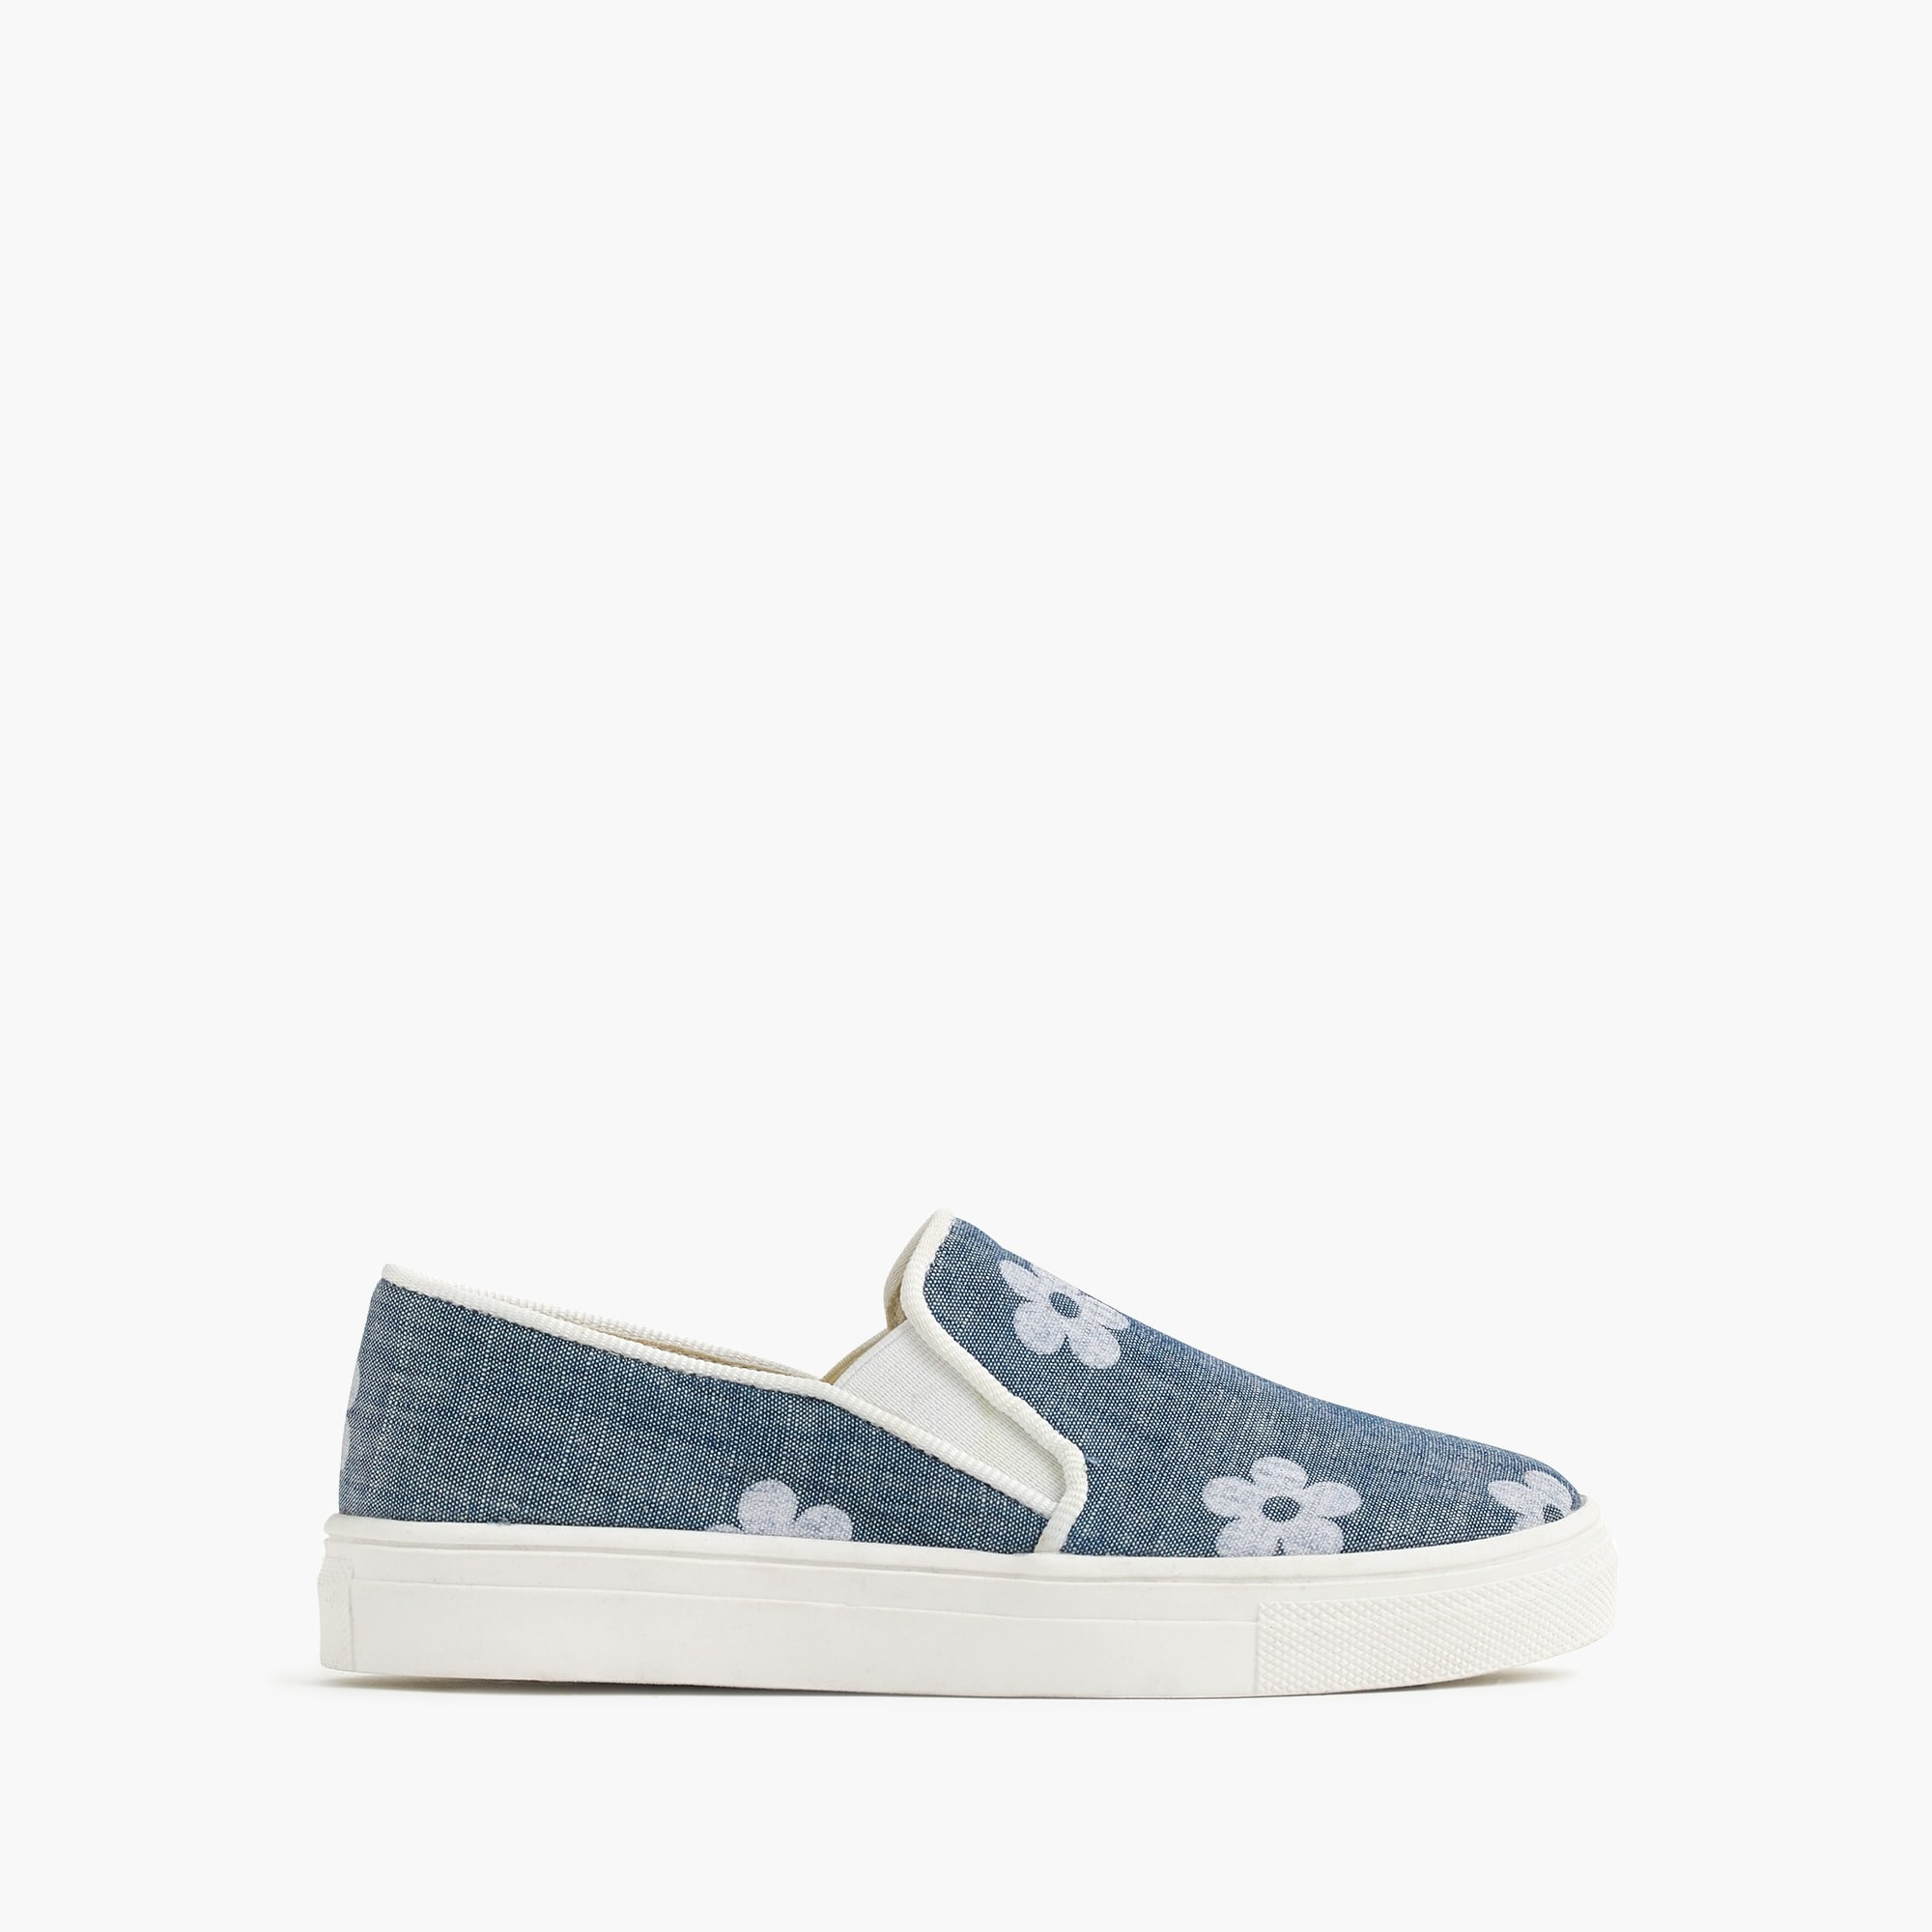 Image 1 for Girls' daisy slip-on sneakers